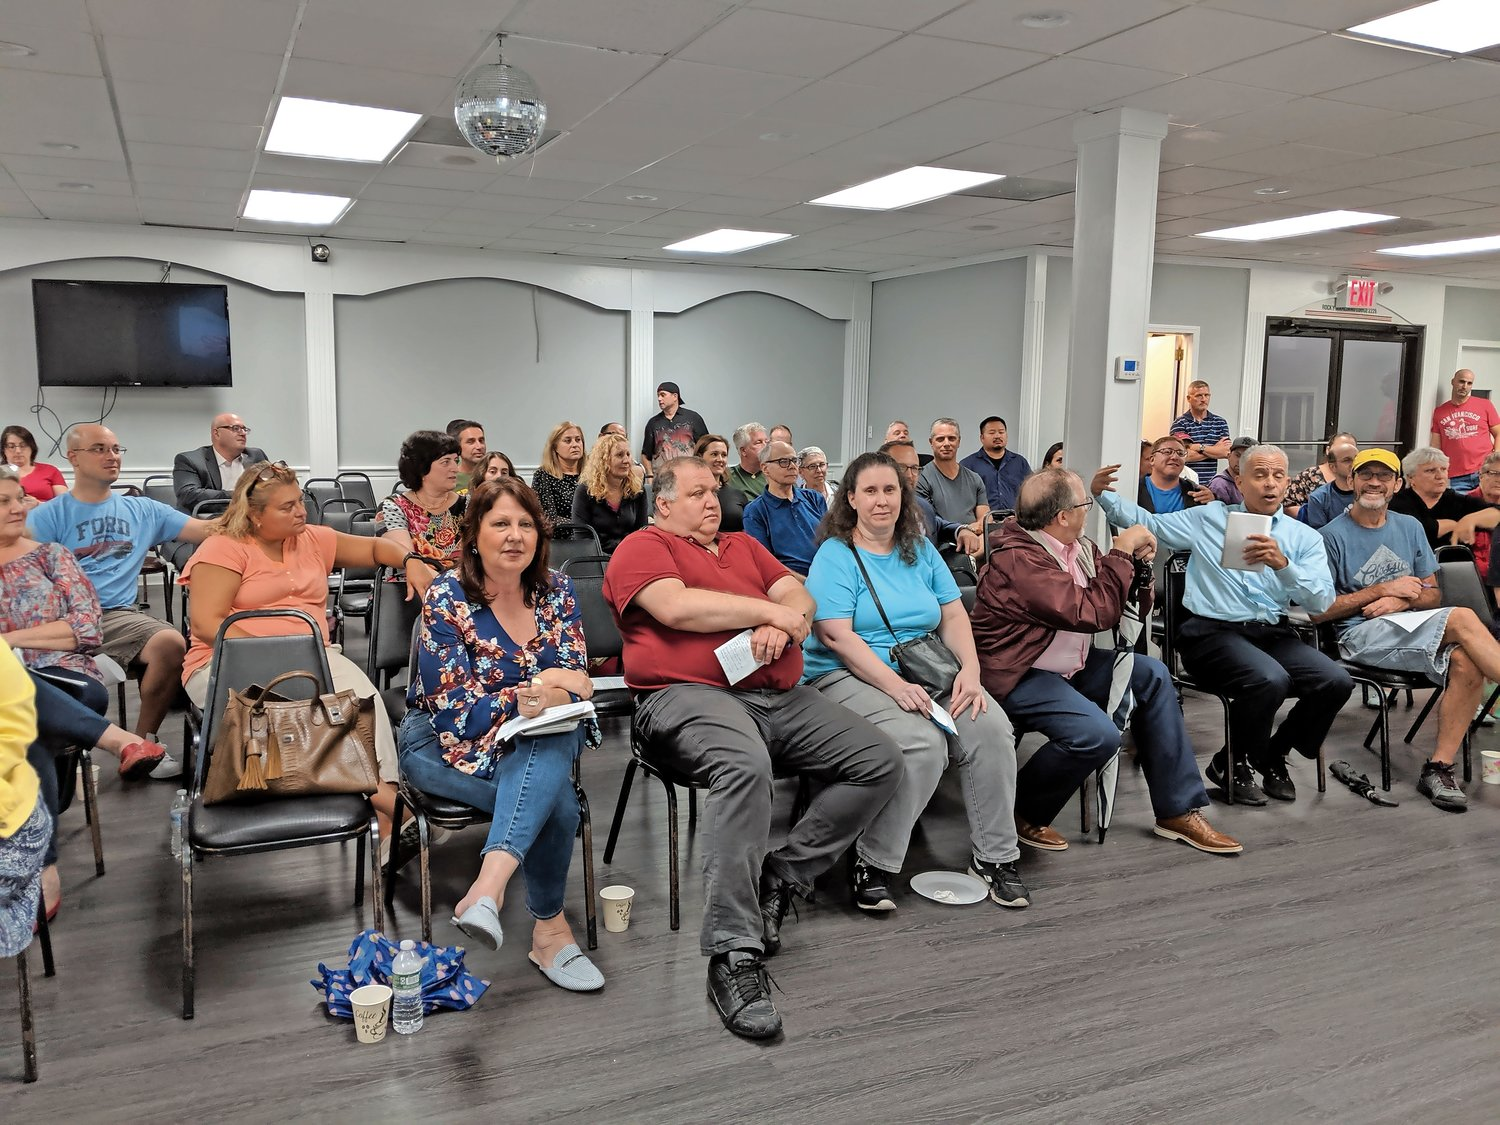 Residents gathered on Oct. 1 to discuss their opposition to a proposed development on the Oceanside Jewish Center property on Brower Avenue.